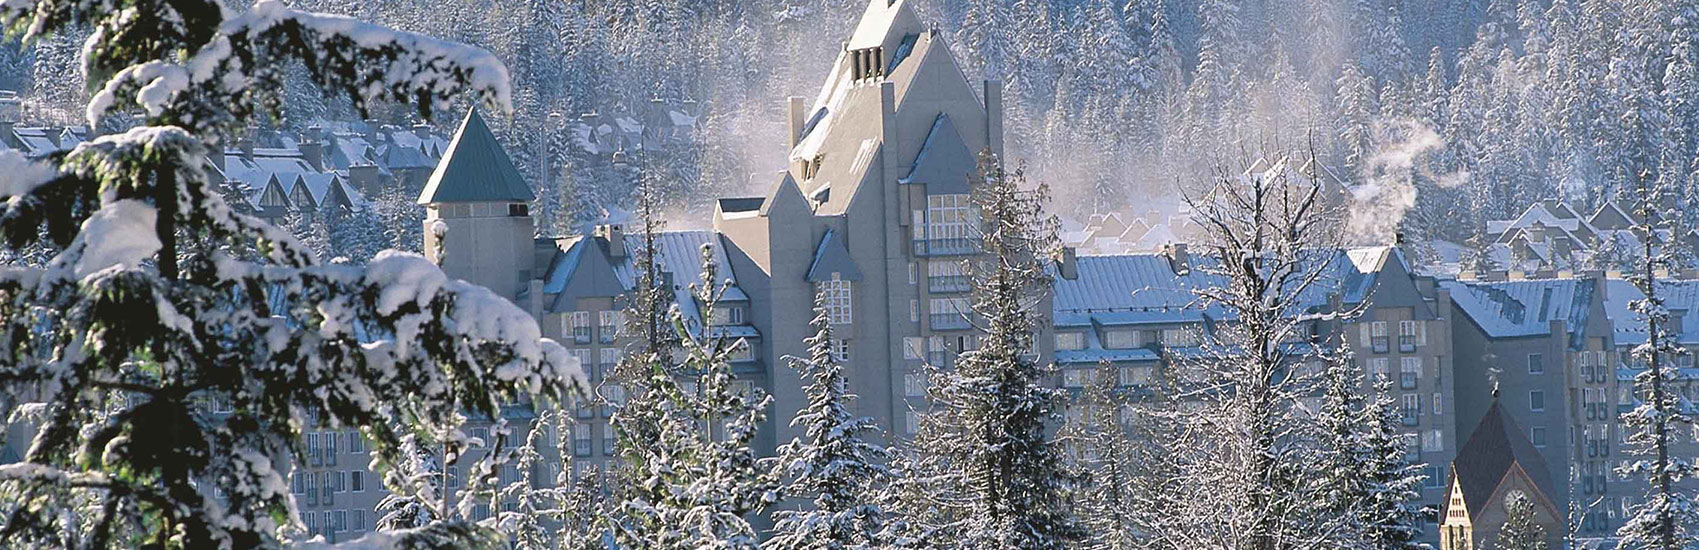 The Fairmont Chateau Whistler 1